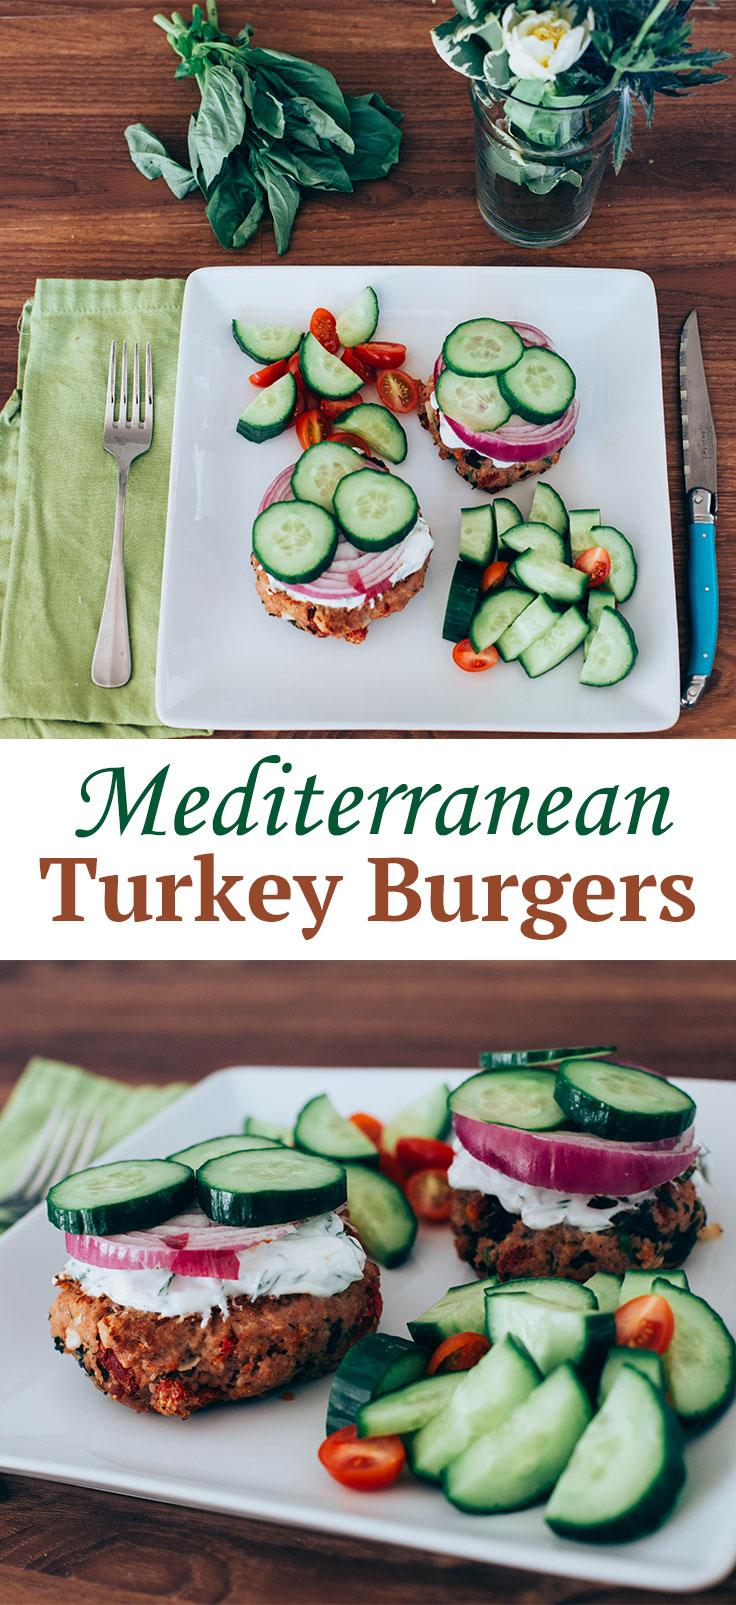 Mediterranean Turkey Burgers — Topped with crunchy veggies and a tangy yogurt sauce, these high-protein turkey burger patties